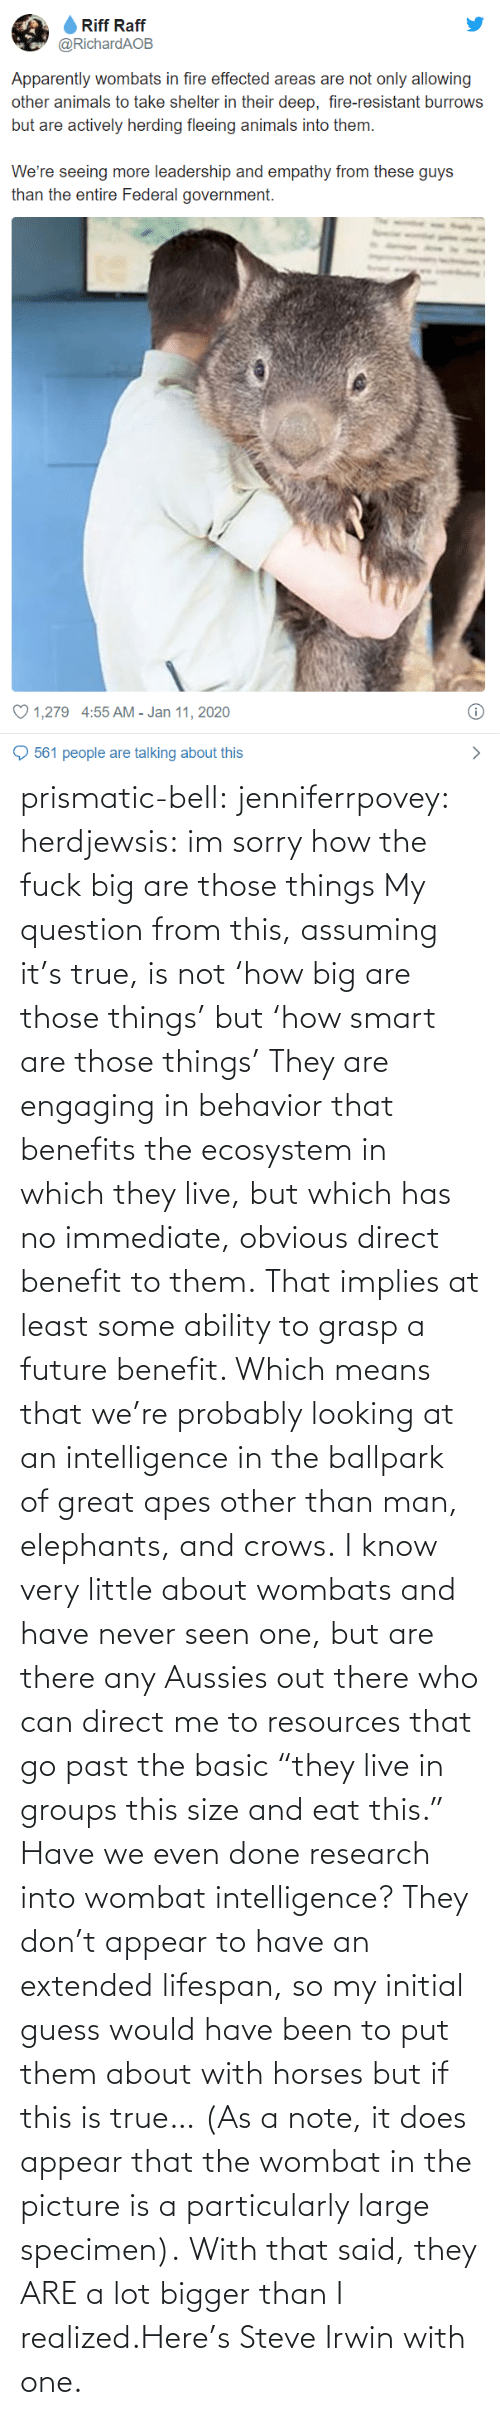 "intelligence: prismatic-bell:  jenniferrpovey: herdjewsis: im sorry how the fuck big are those things My question from this, assuming it's true, is not 'how big are those things' but 'how smart are those things' They are engaging in behavior that benefits the ecosystem in which they live, but which has no immediate, obvious direct benefit to them. That implies at least some ability to grasp a future benefit. Which means that we're probably looking at an intelligence in the ballpark of great apes other than man, elephants, and crows. I know very little about wombats and have never seen one, but are there any Aussies out there who can direct me to resources that go past the basic ""they live in groups this size and eat this."" Have we even done research into wombat intelligence? They don't appear to have an extended lifespan, so my initial guess would have been to put them about with horses but if this is true… (As a note, it does appear that the wombat in the picture is a particularly large specimen).  With that said, they ARE a lot bigger than I realized.Here's Steve Irwin with one."